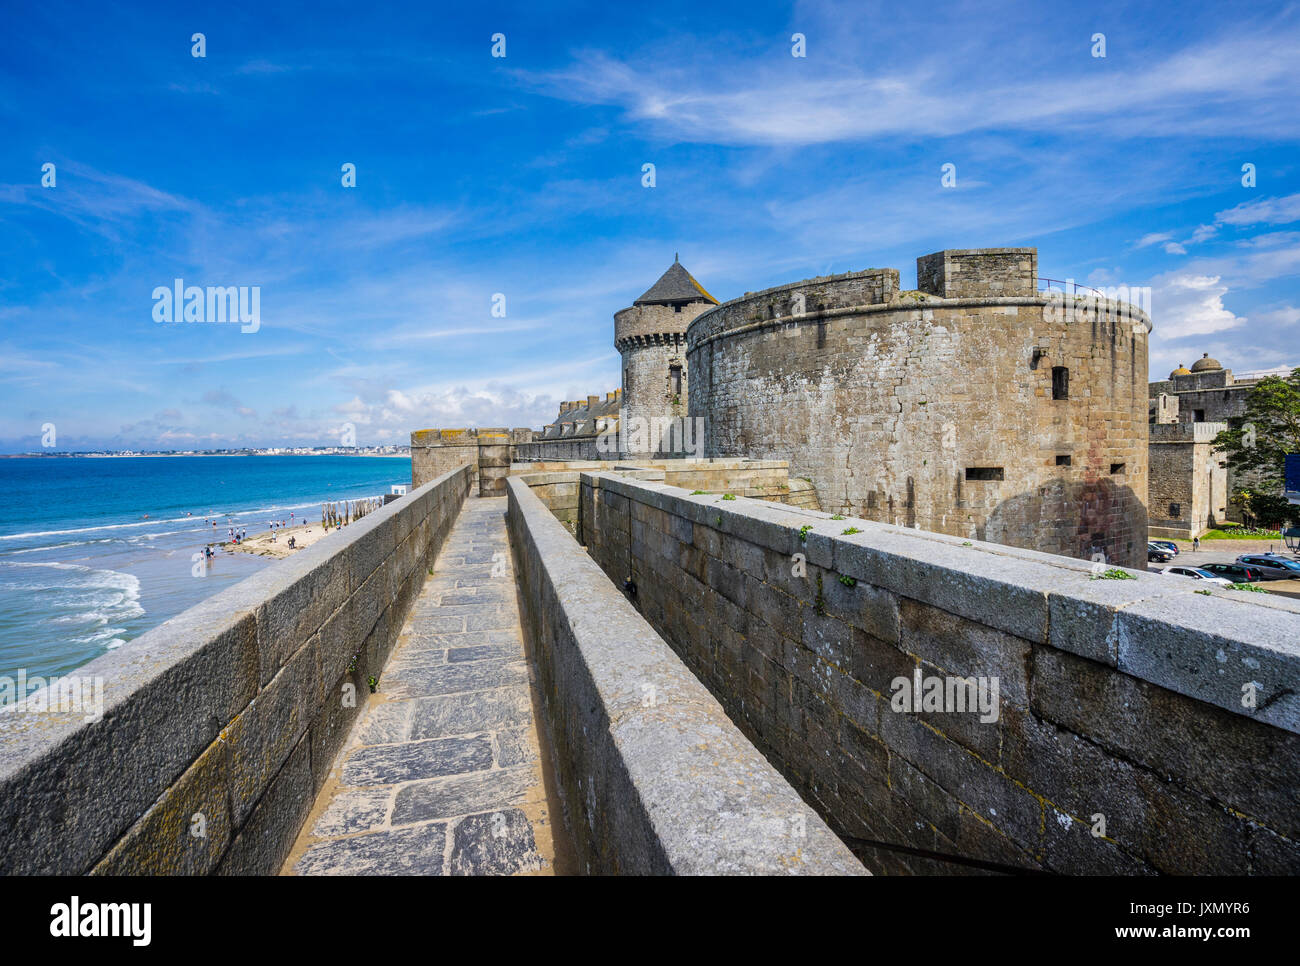 France, Brittany, Saint-Malo, view of Chateau Gailard and city wall fortifications - Stock Image